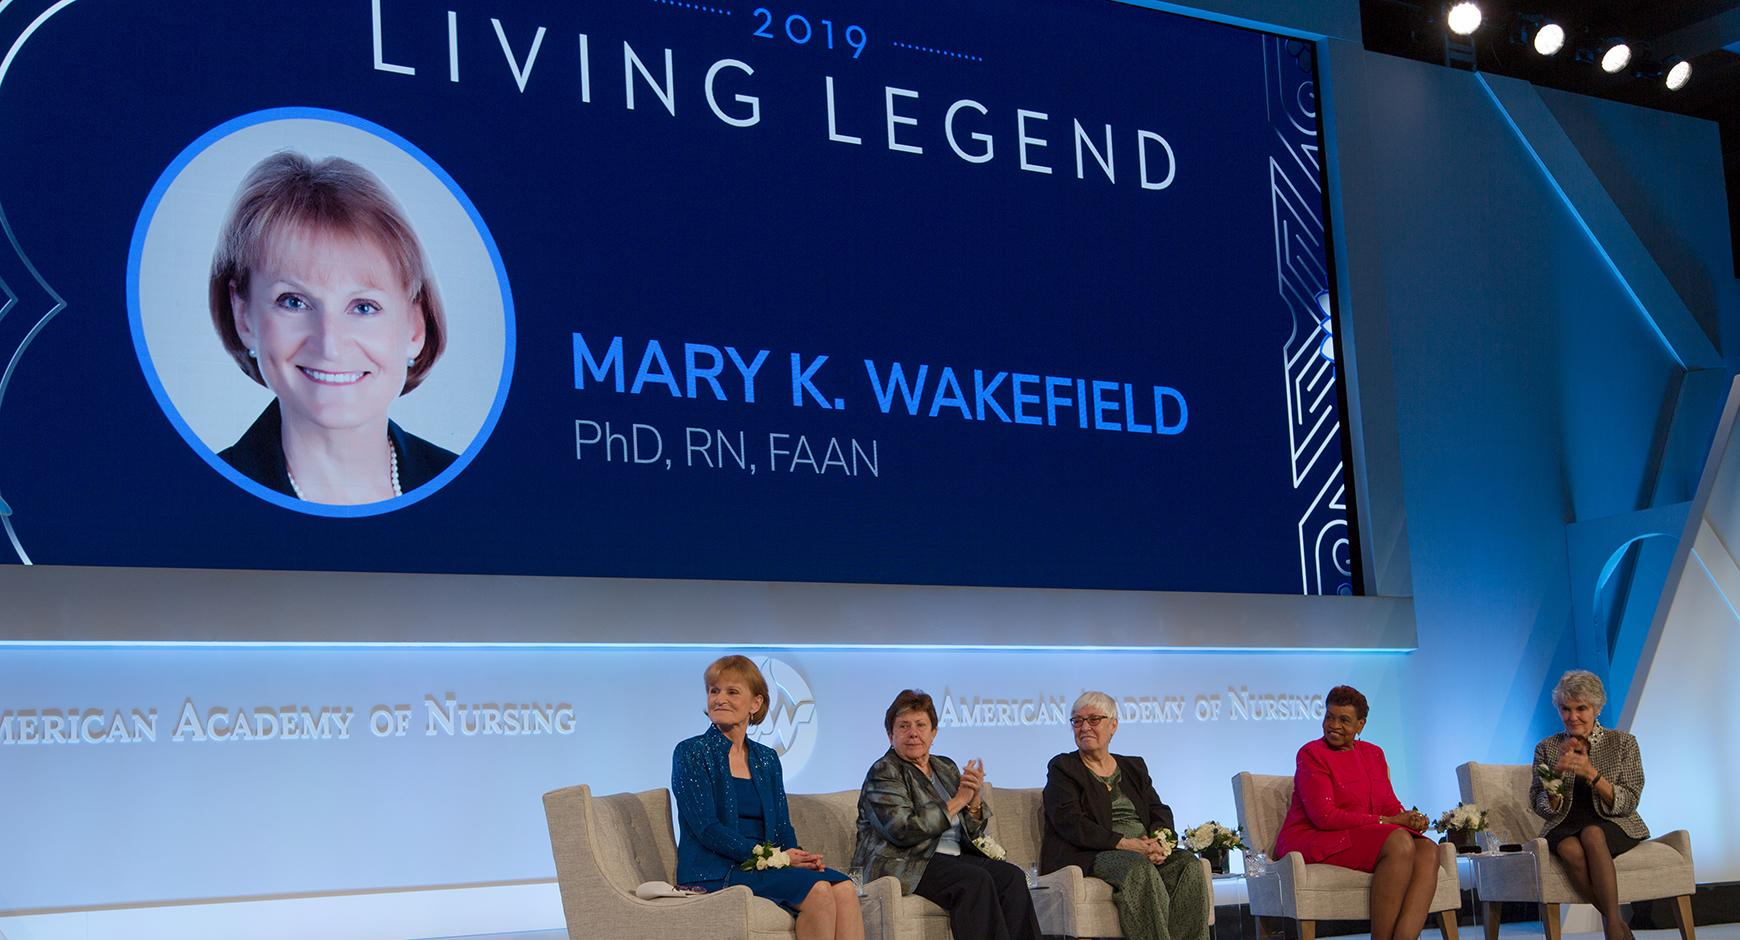 2019 Living Legend: Mary Wakefield, PhD, RN, FAAN